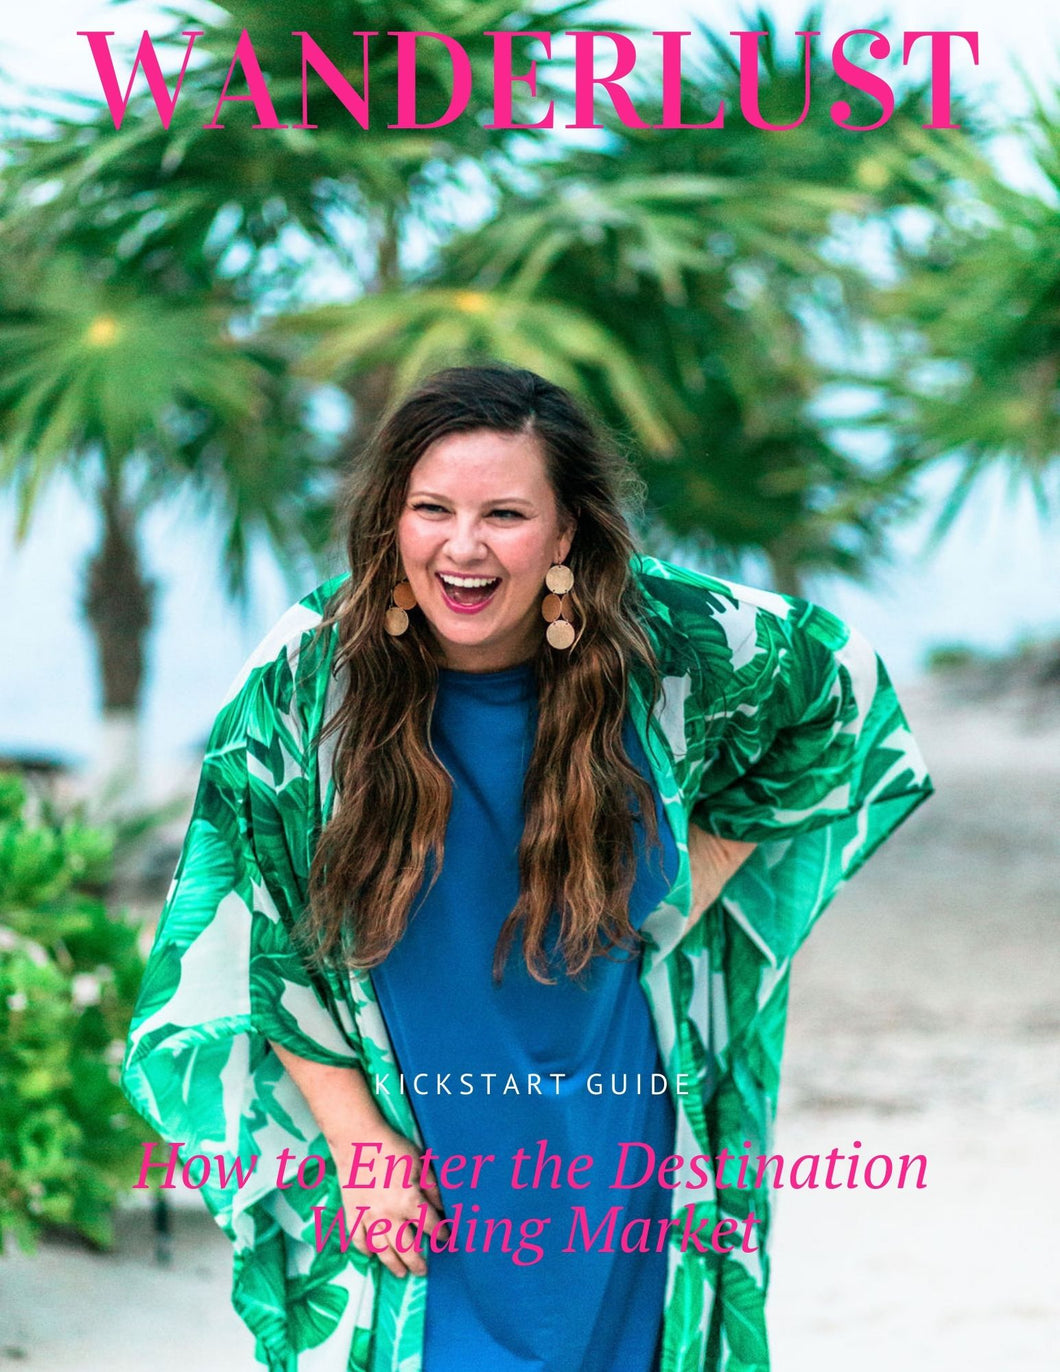 Freebie! Kickstart Guide to Destination Weddings